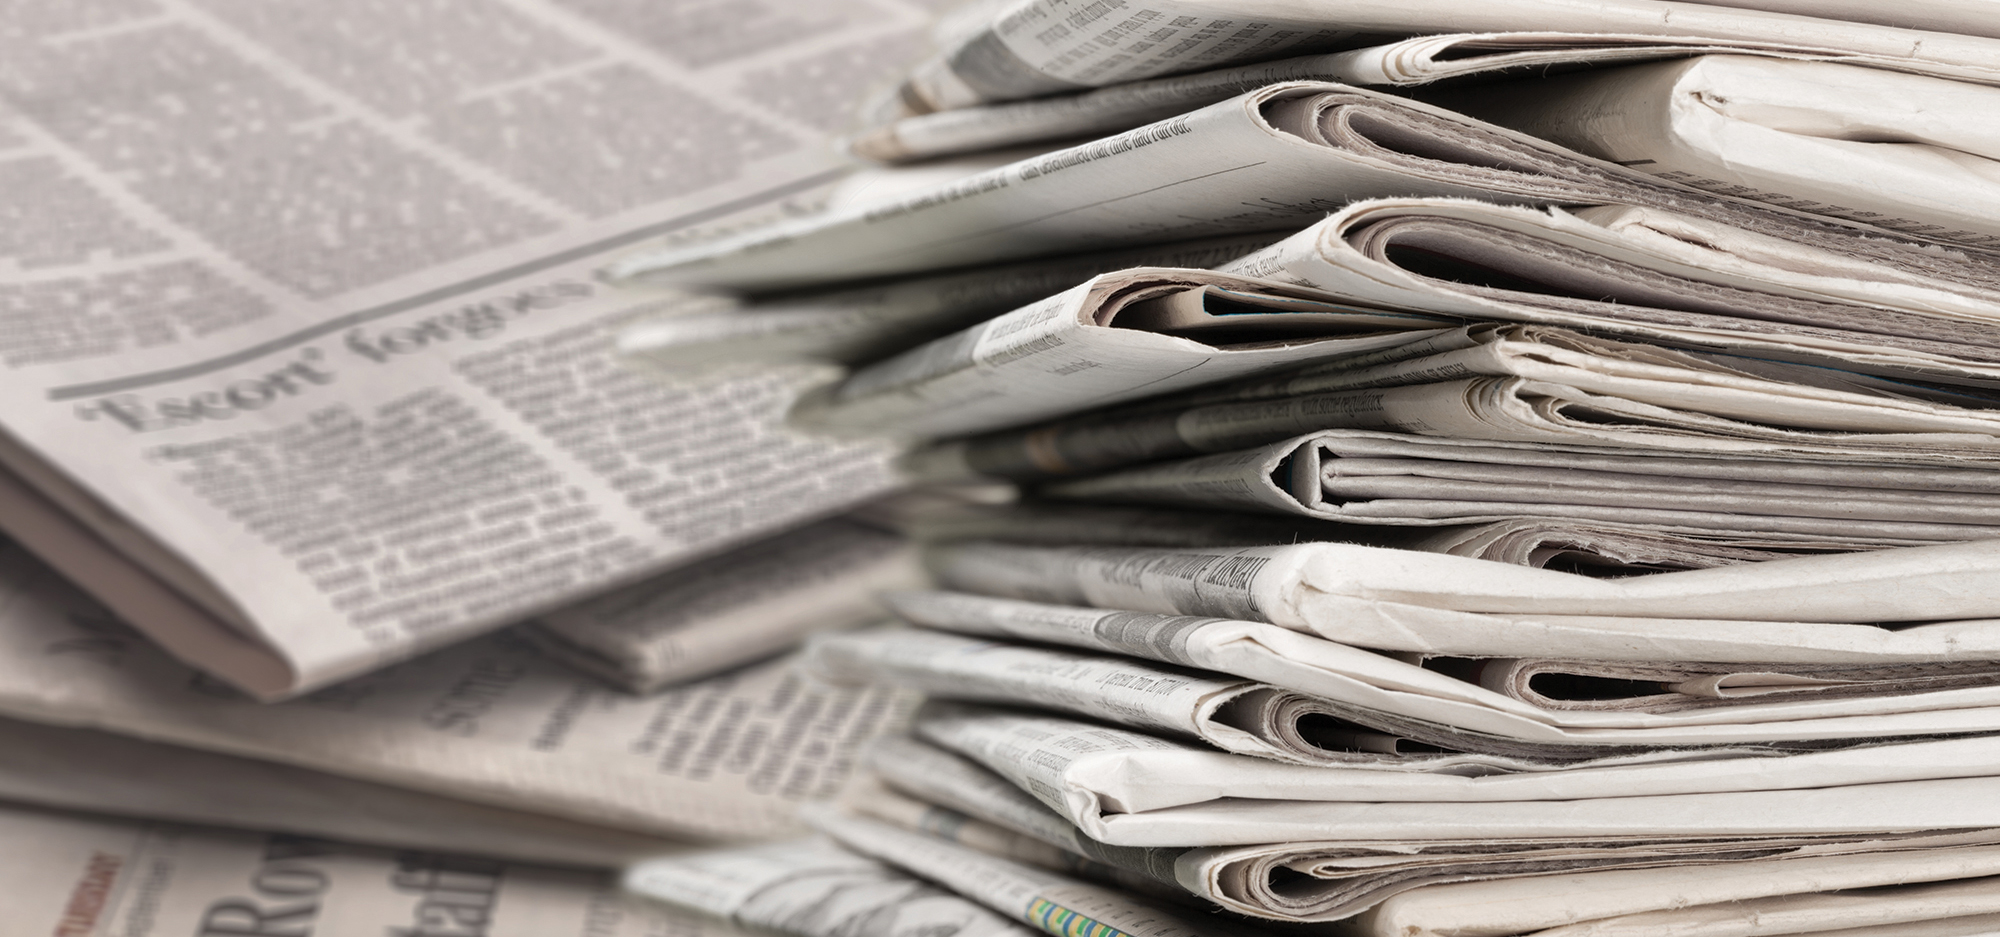 thenews.coop - Rebecca Harvey - Co-op journalism: the role of user-led and member-owned media